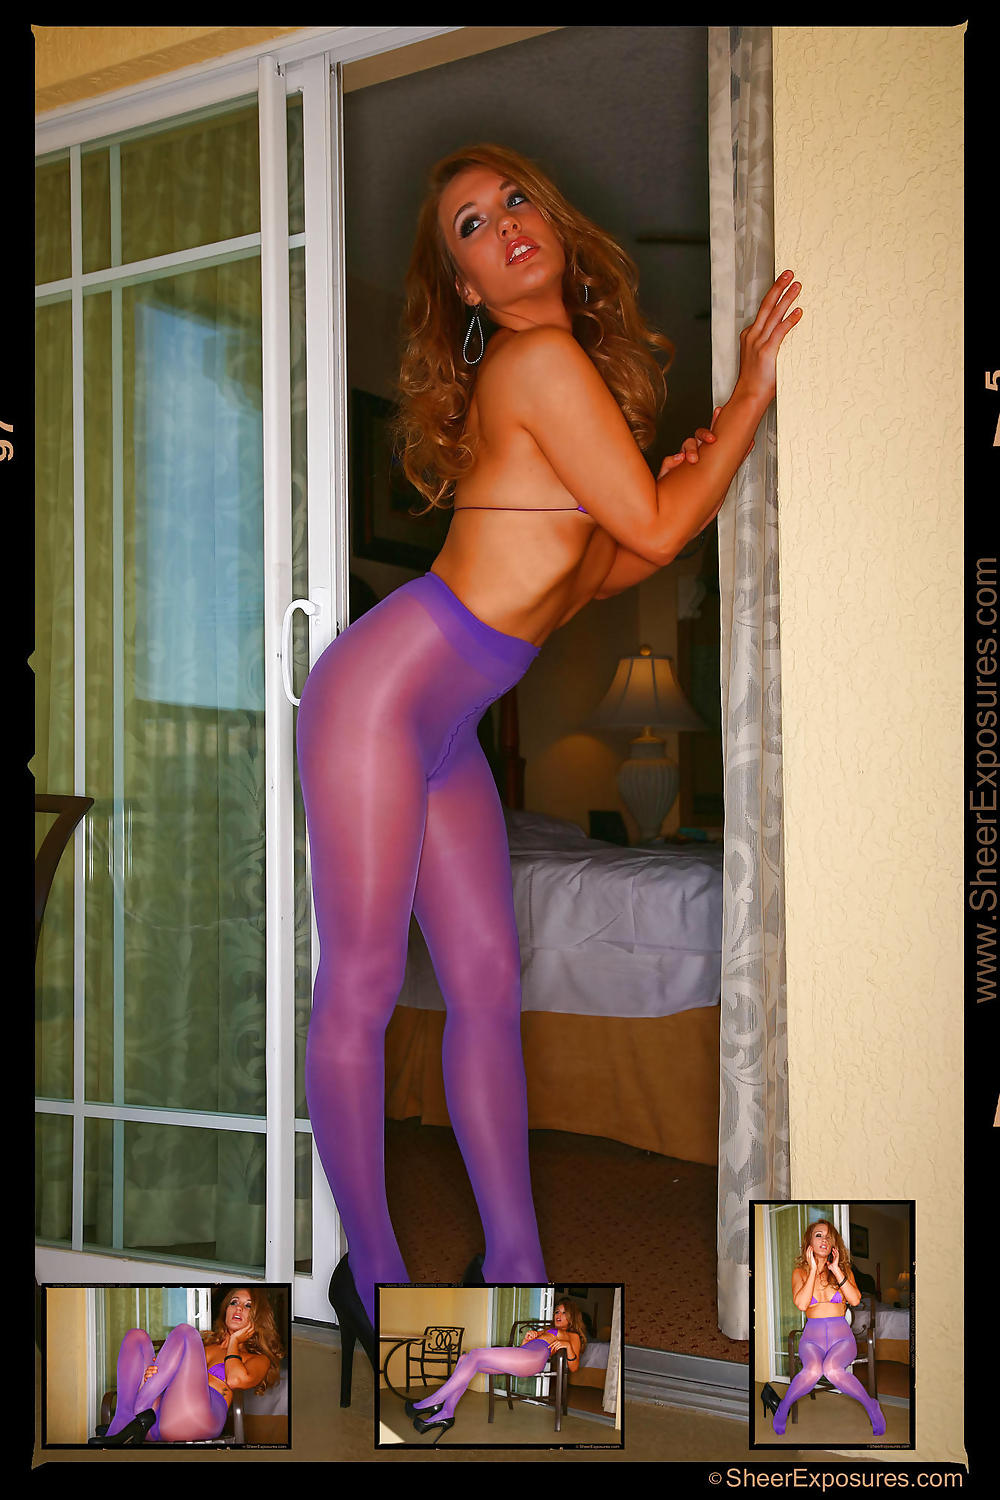 pantyhose-are-coming-back